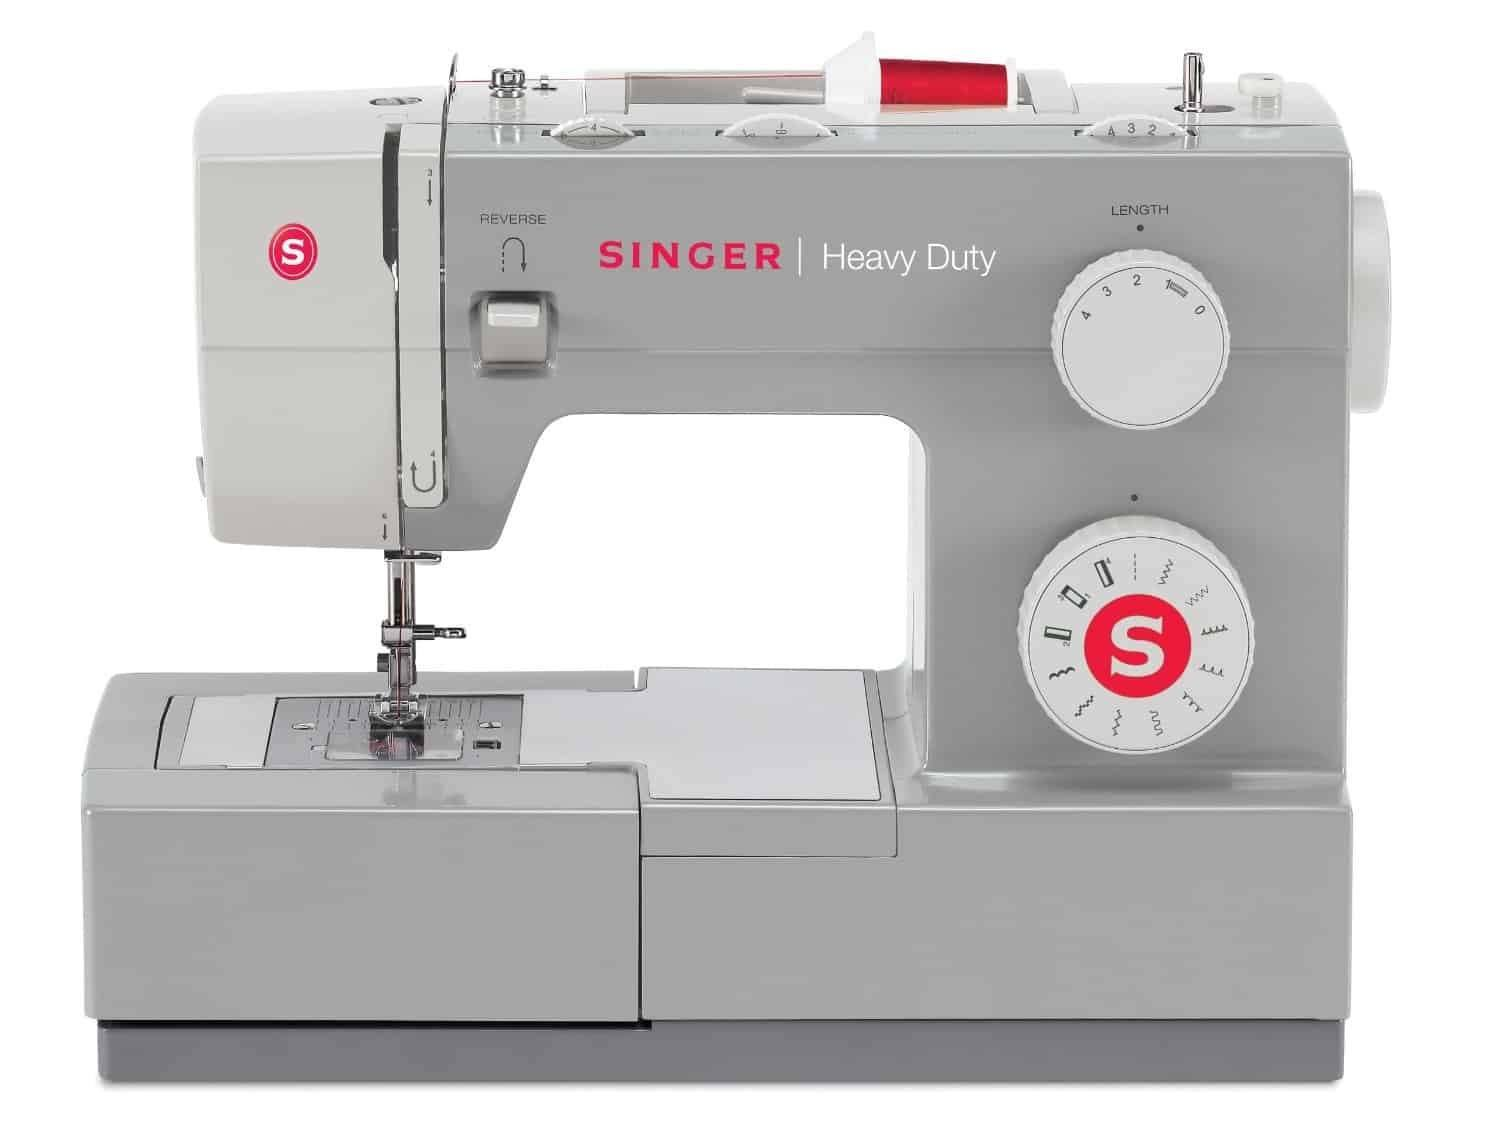 Singer 4411 Sewing Machine Review